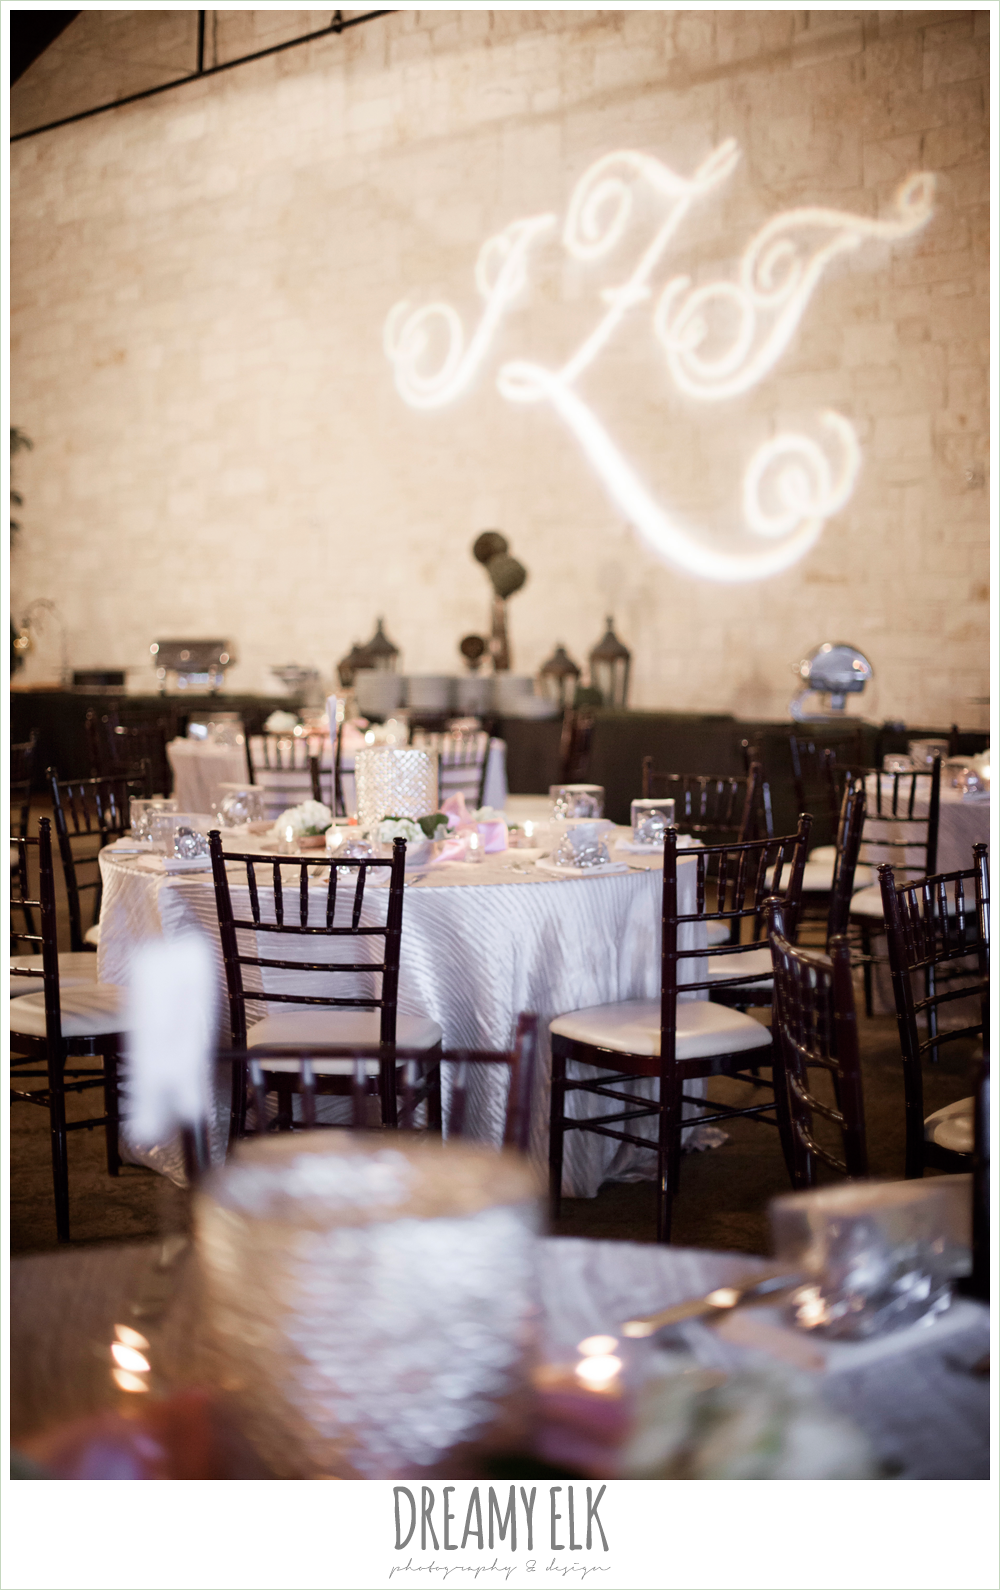 couples initials in lights on the wall, blush toned table linens, briscoe manor, houston winter wedding photo {dreamy elk photography and design}